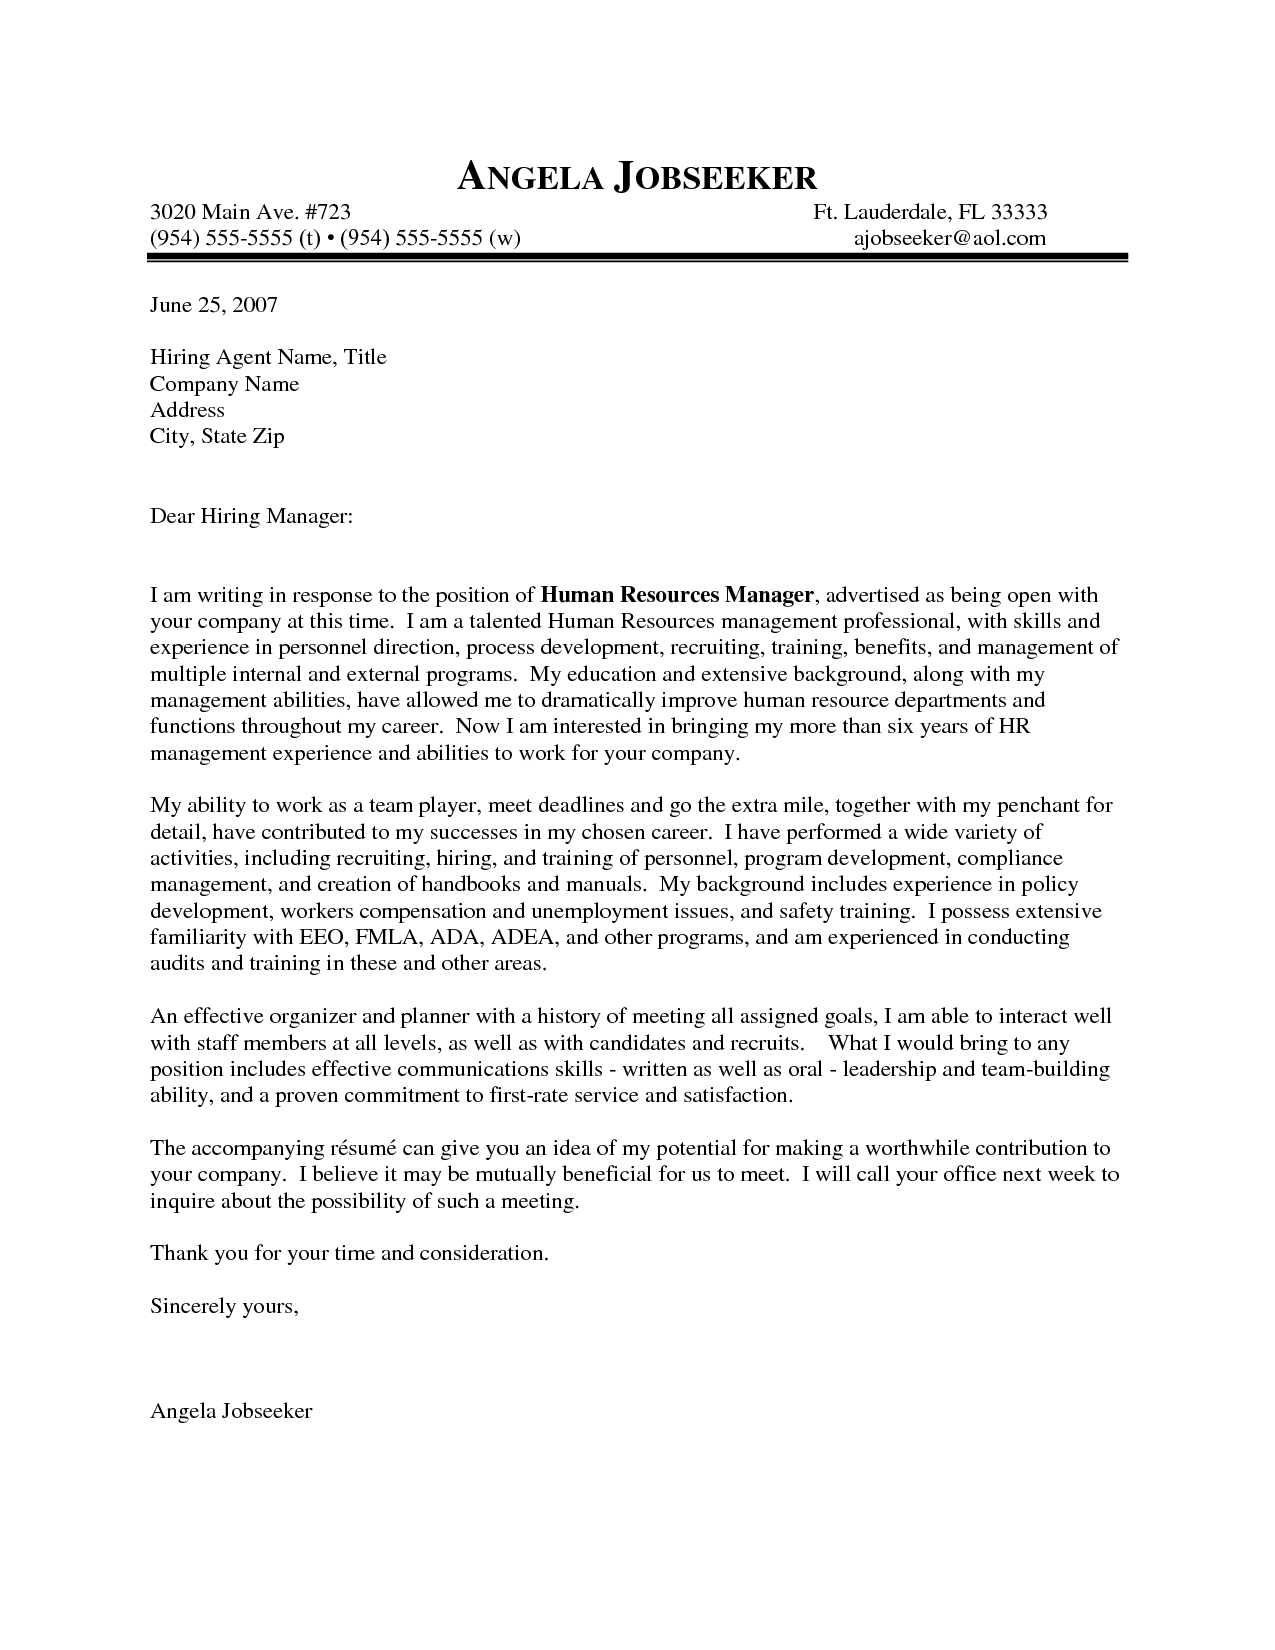 Cover Letter Template Human Resources Personal Interview